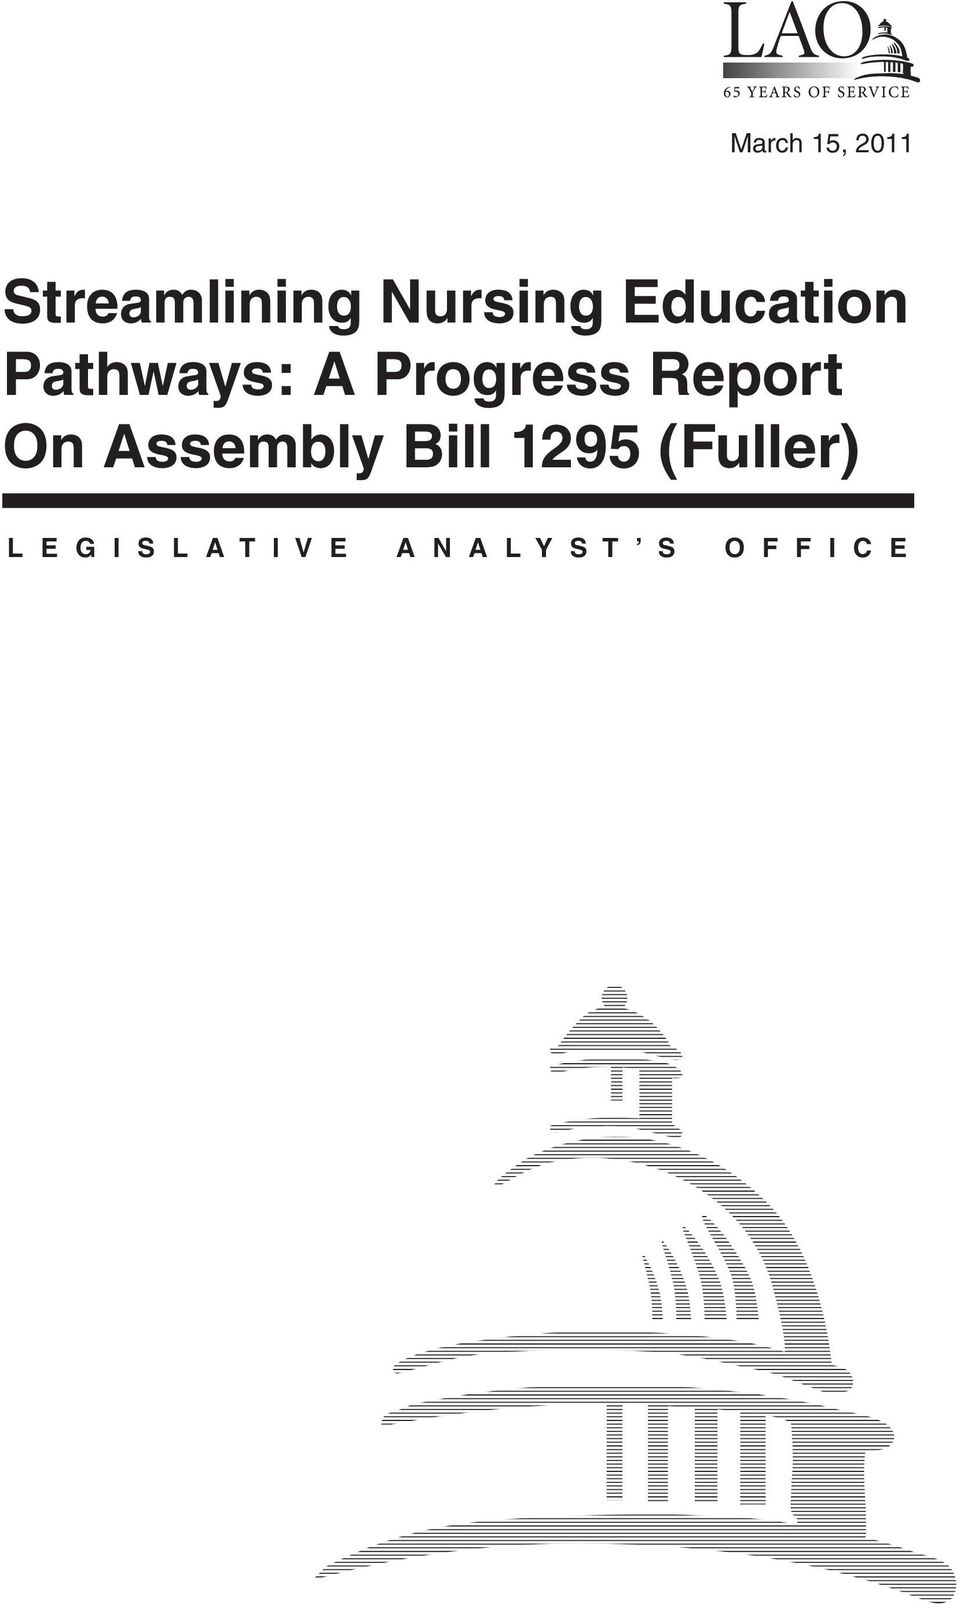 On Assembly Bill 1295 (Fuller) L E G I